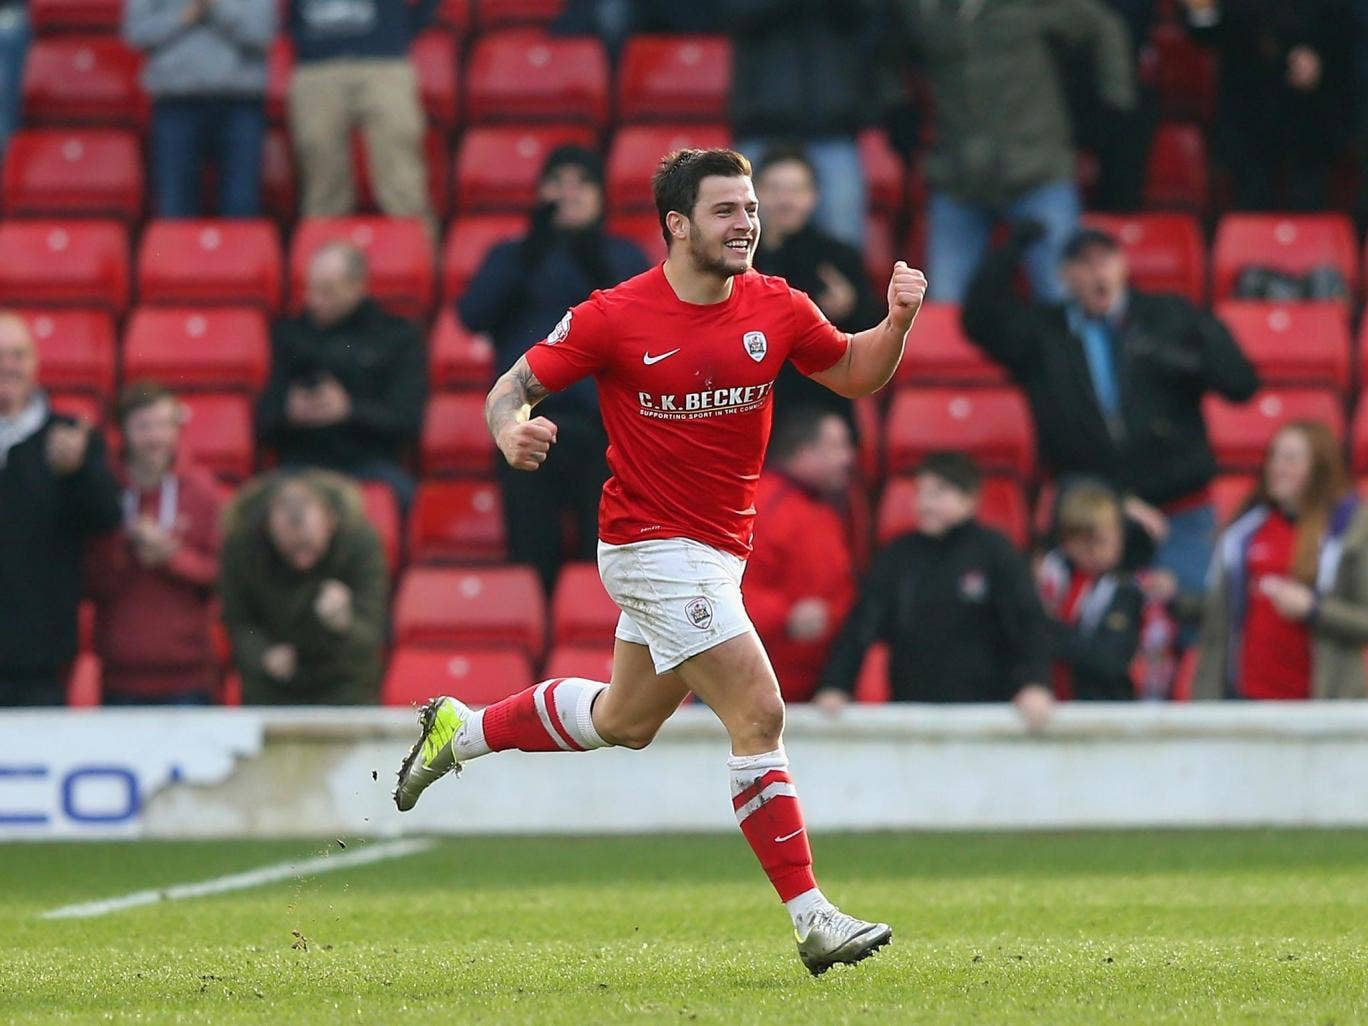 Dale Jennings scores his first goal for Barnsley, against Nottingham Forest early last month